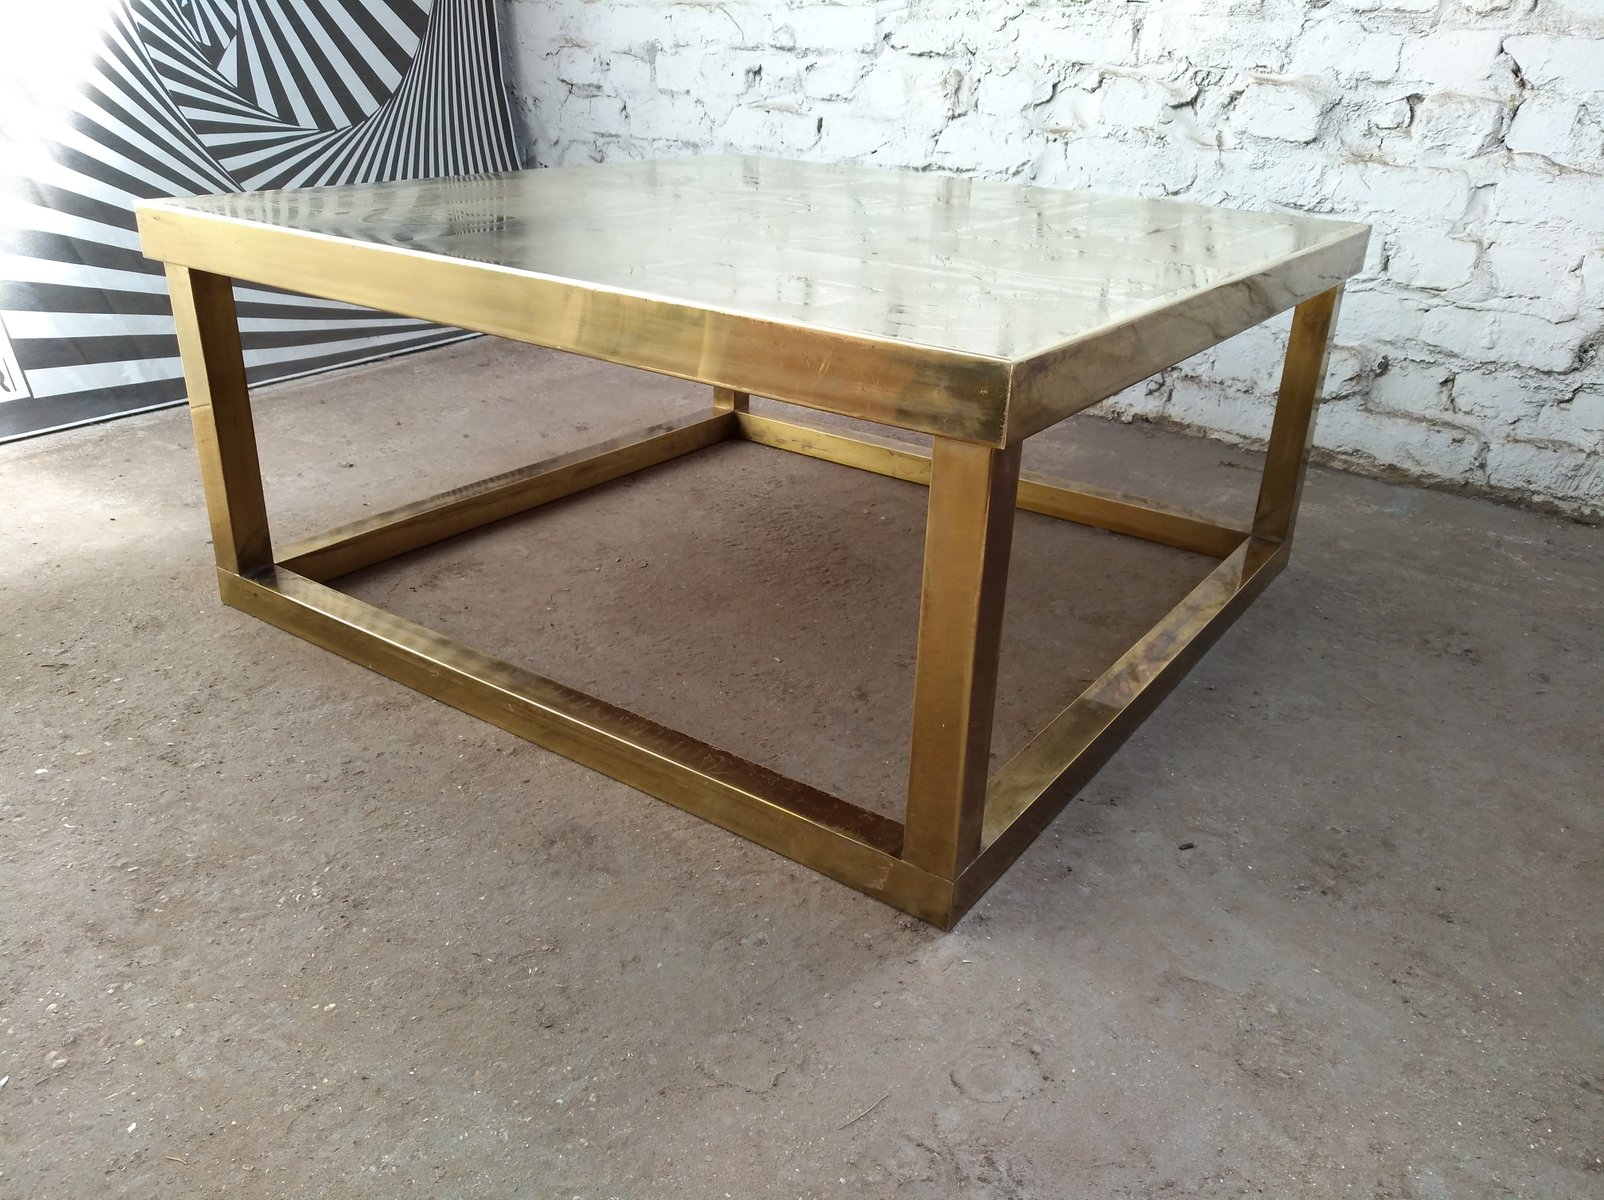 Square Belgian Brutalist Etched Brass Coffee Table by Willy Daro